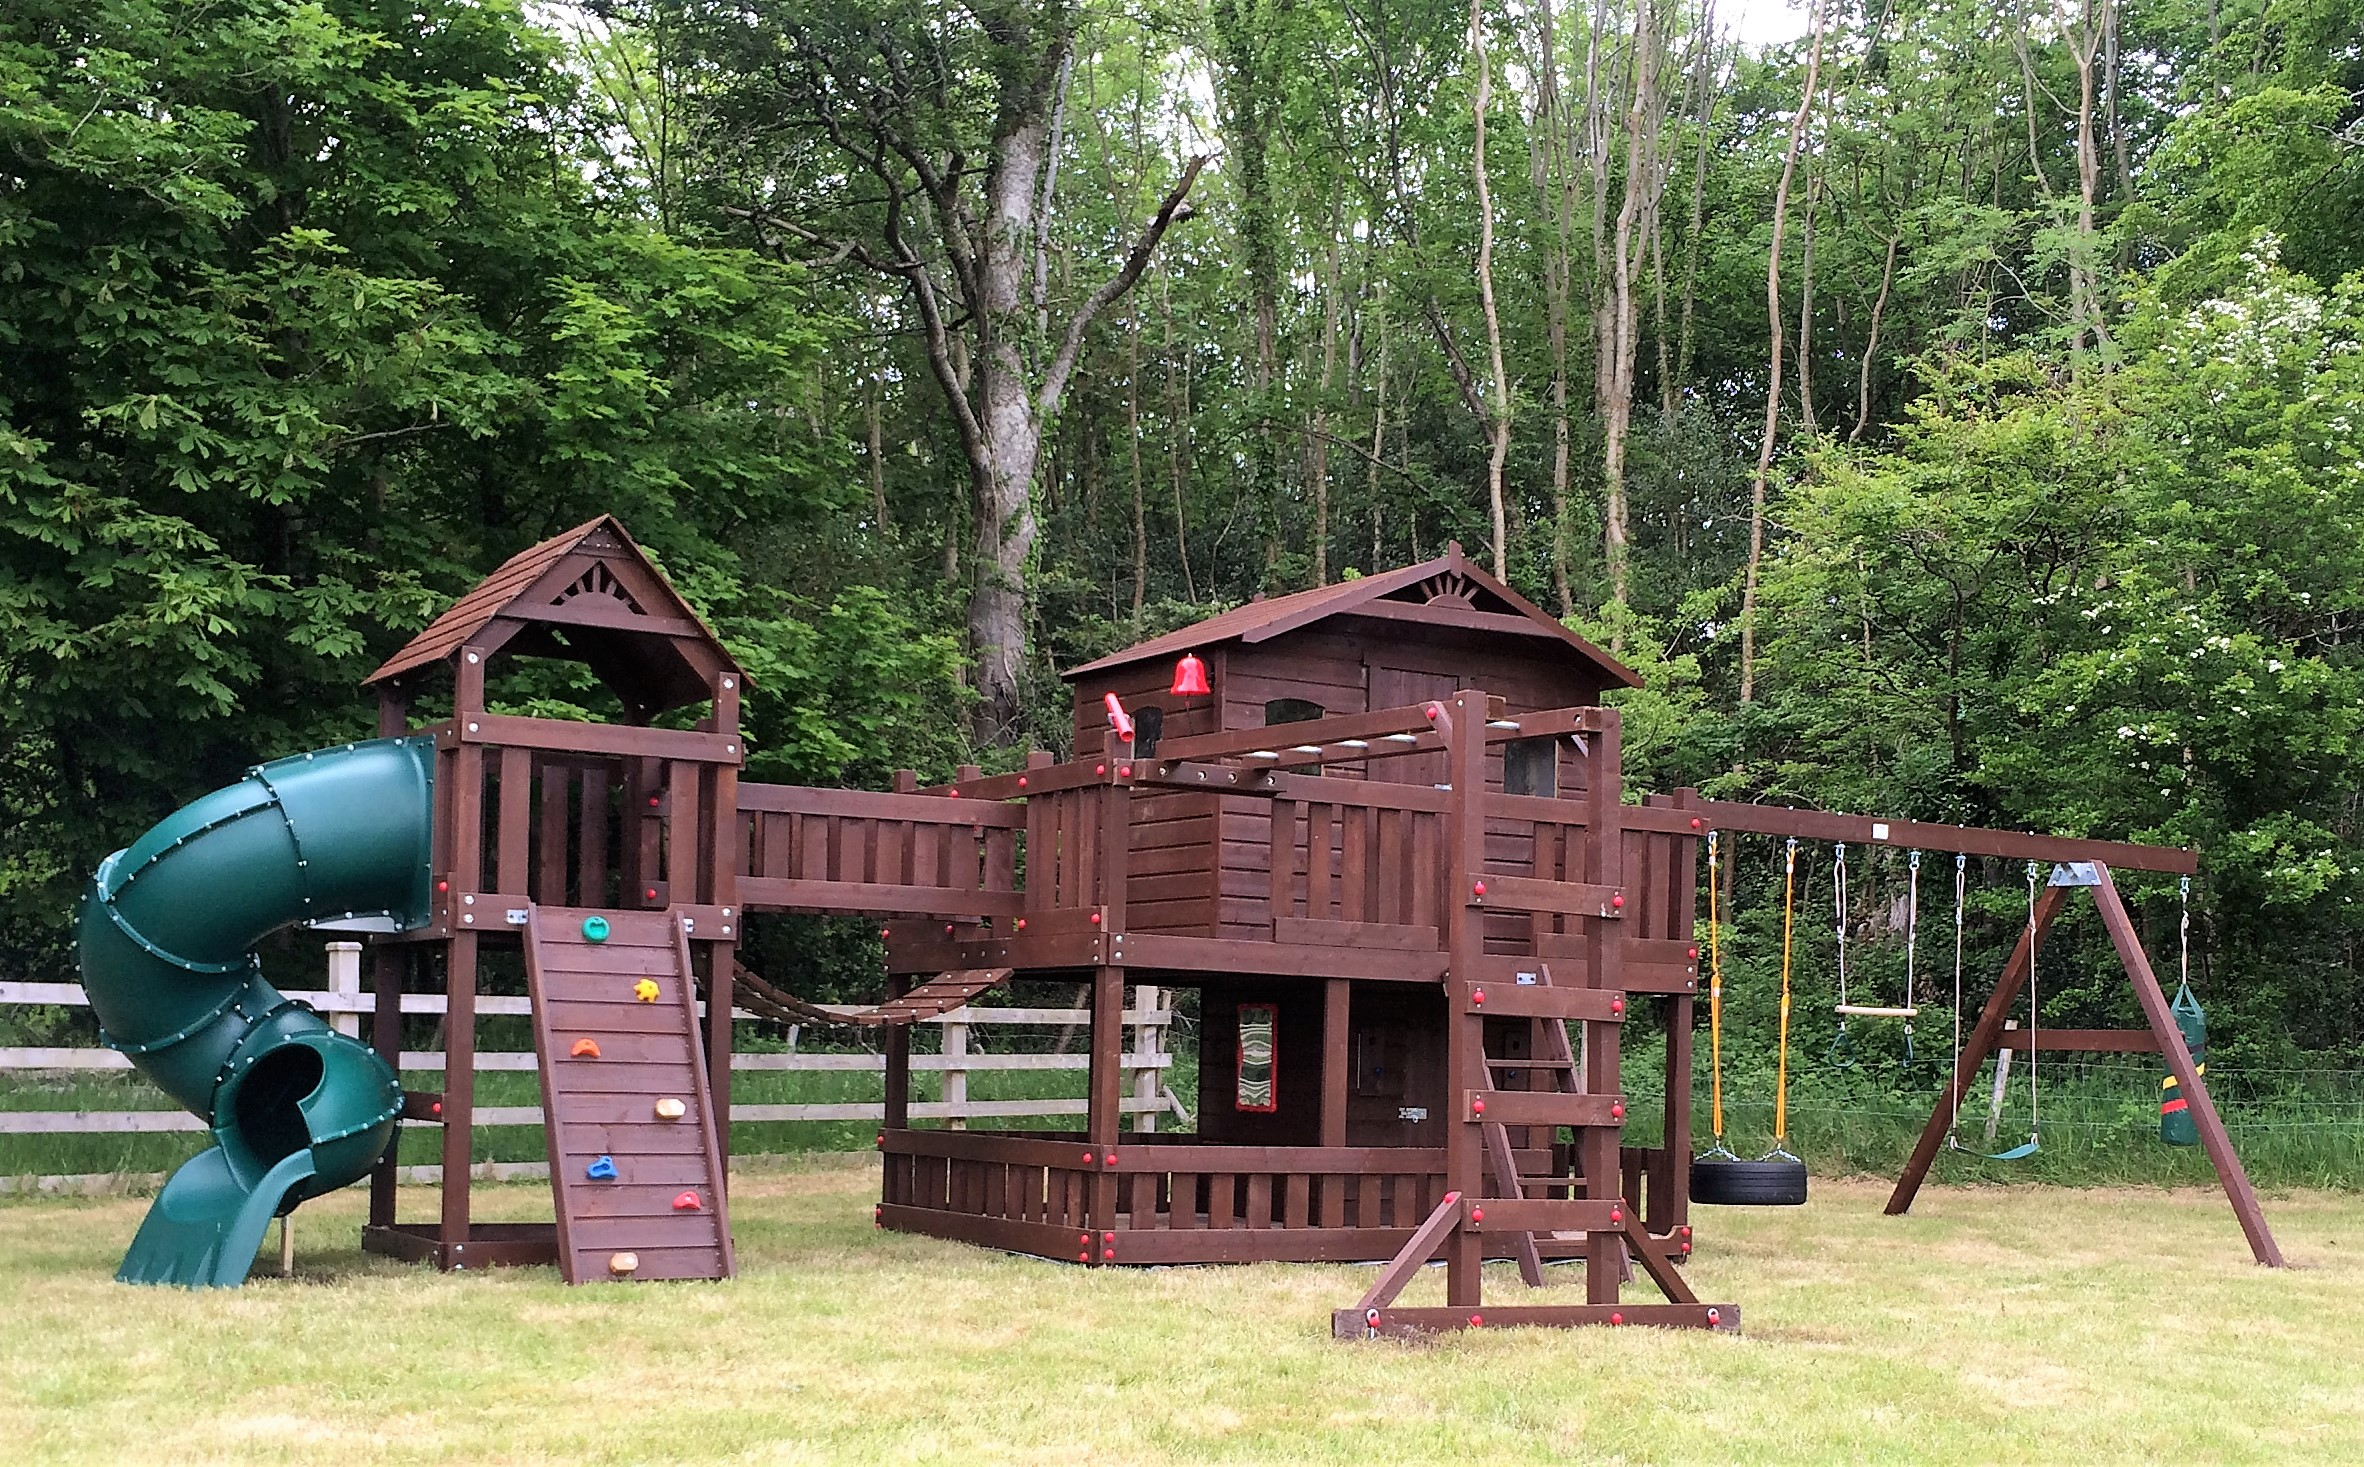 Large tree house,spiral tube slide,monkey bar beam,swing set,